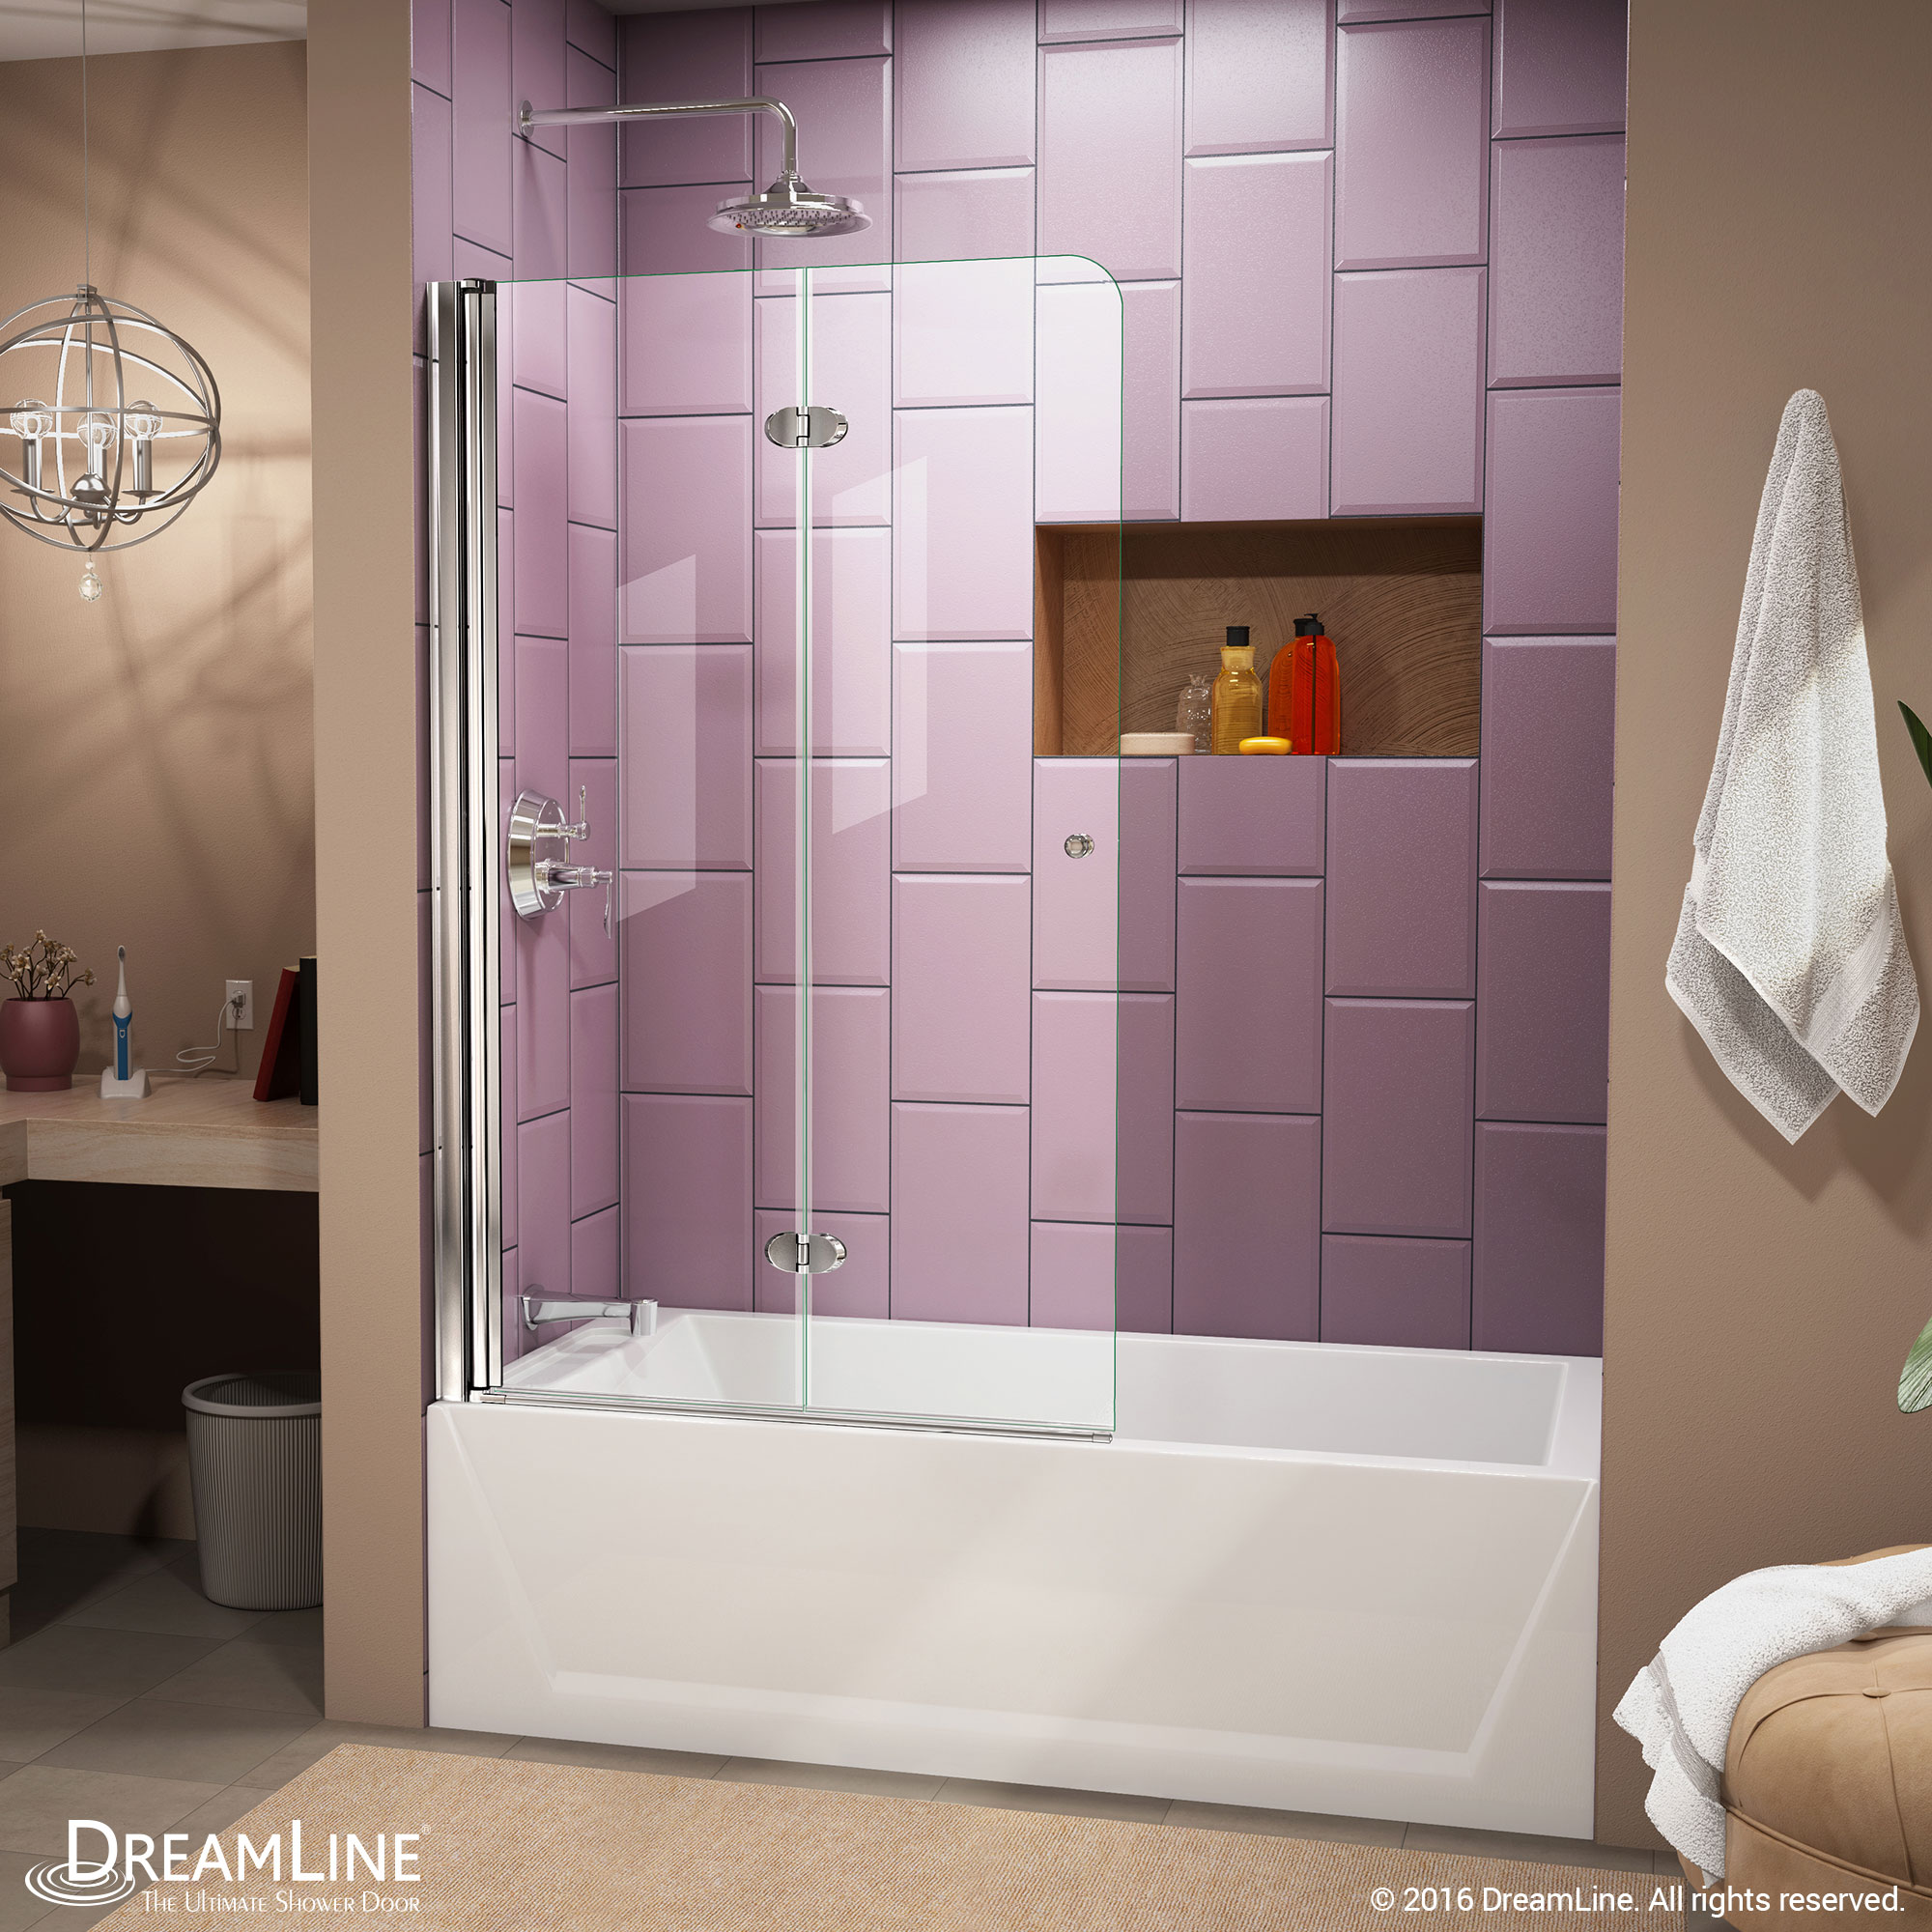 DreamLine Aqua 56-60 in. W x 30 in. D x 58 in. H Frameless Hinged Tub Door with 30 in. Return Panel in Brushed Nickel